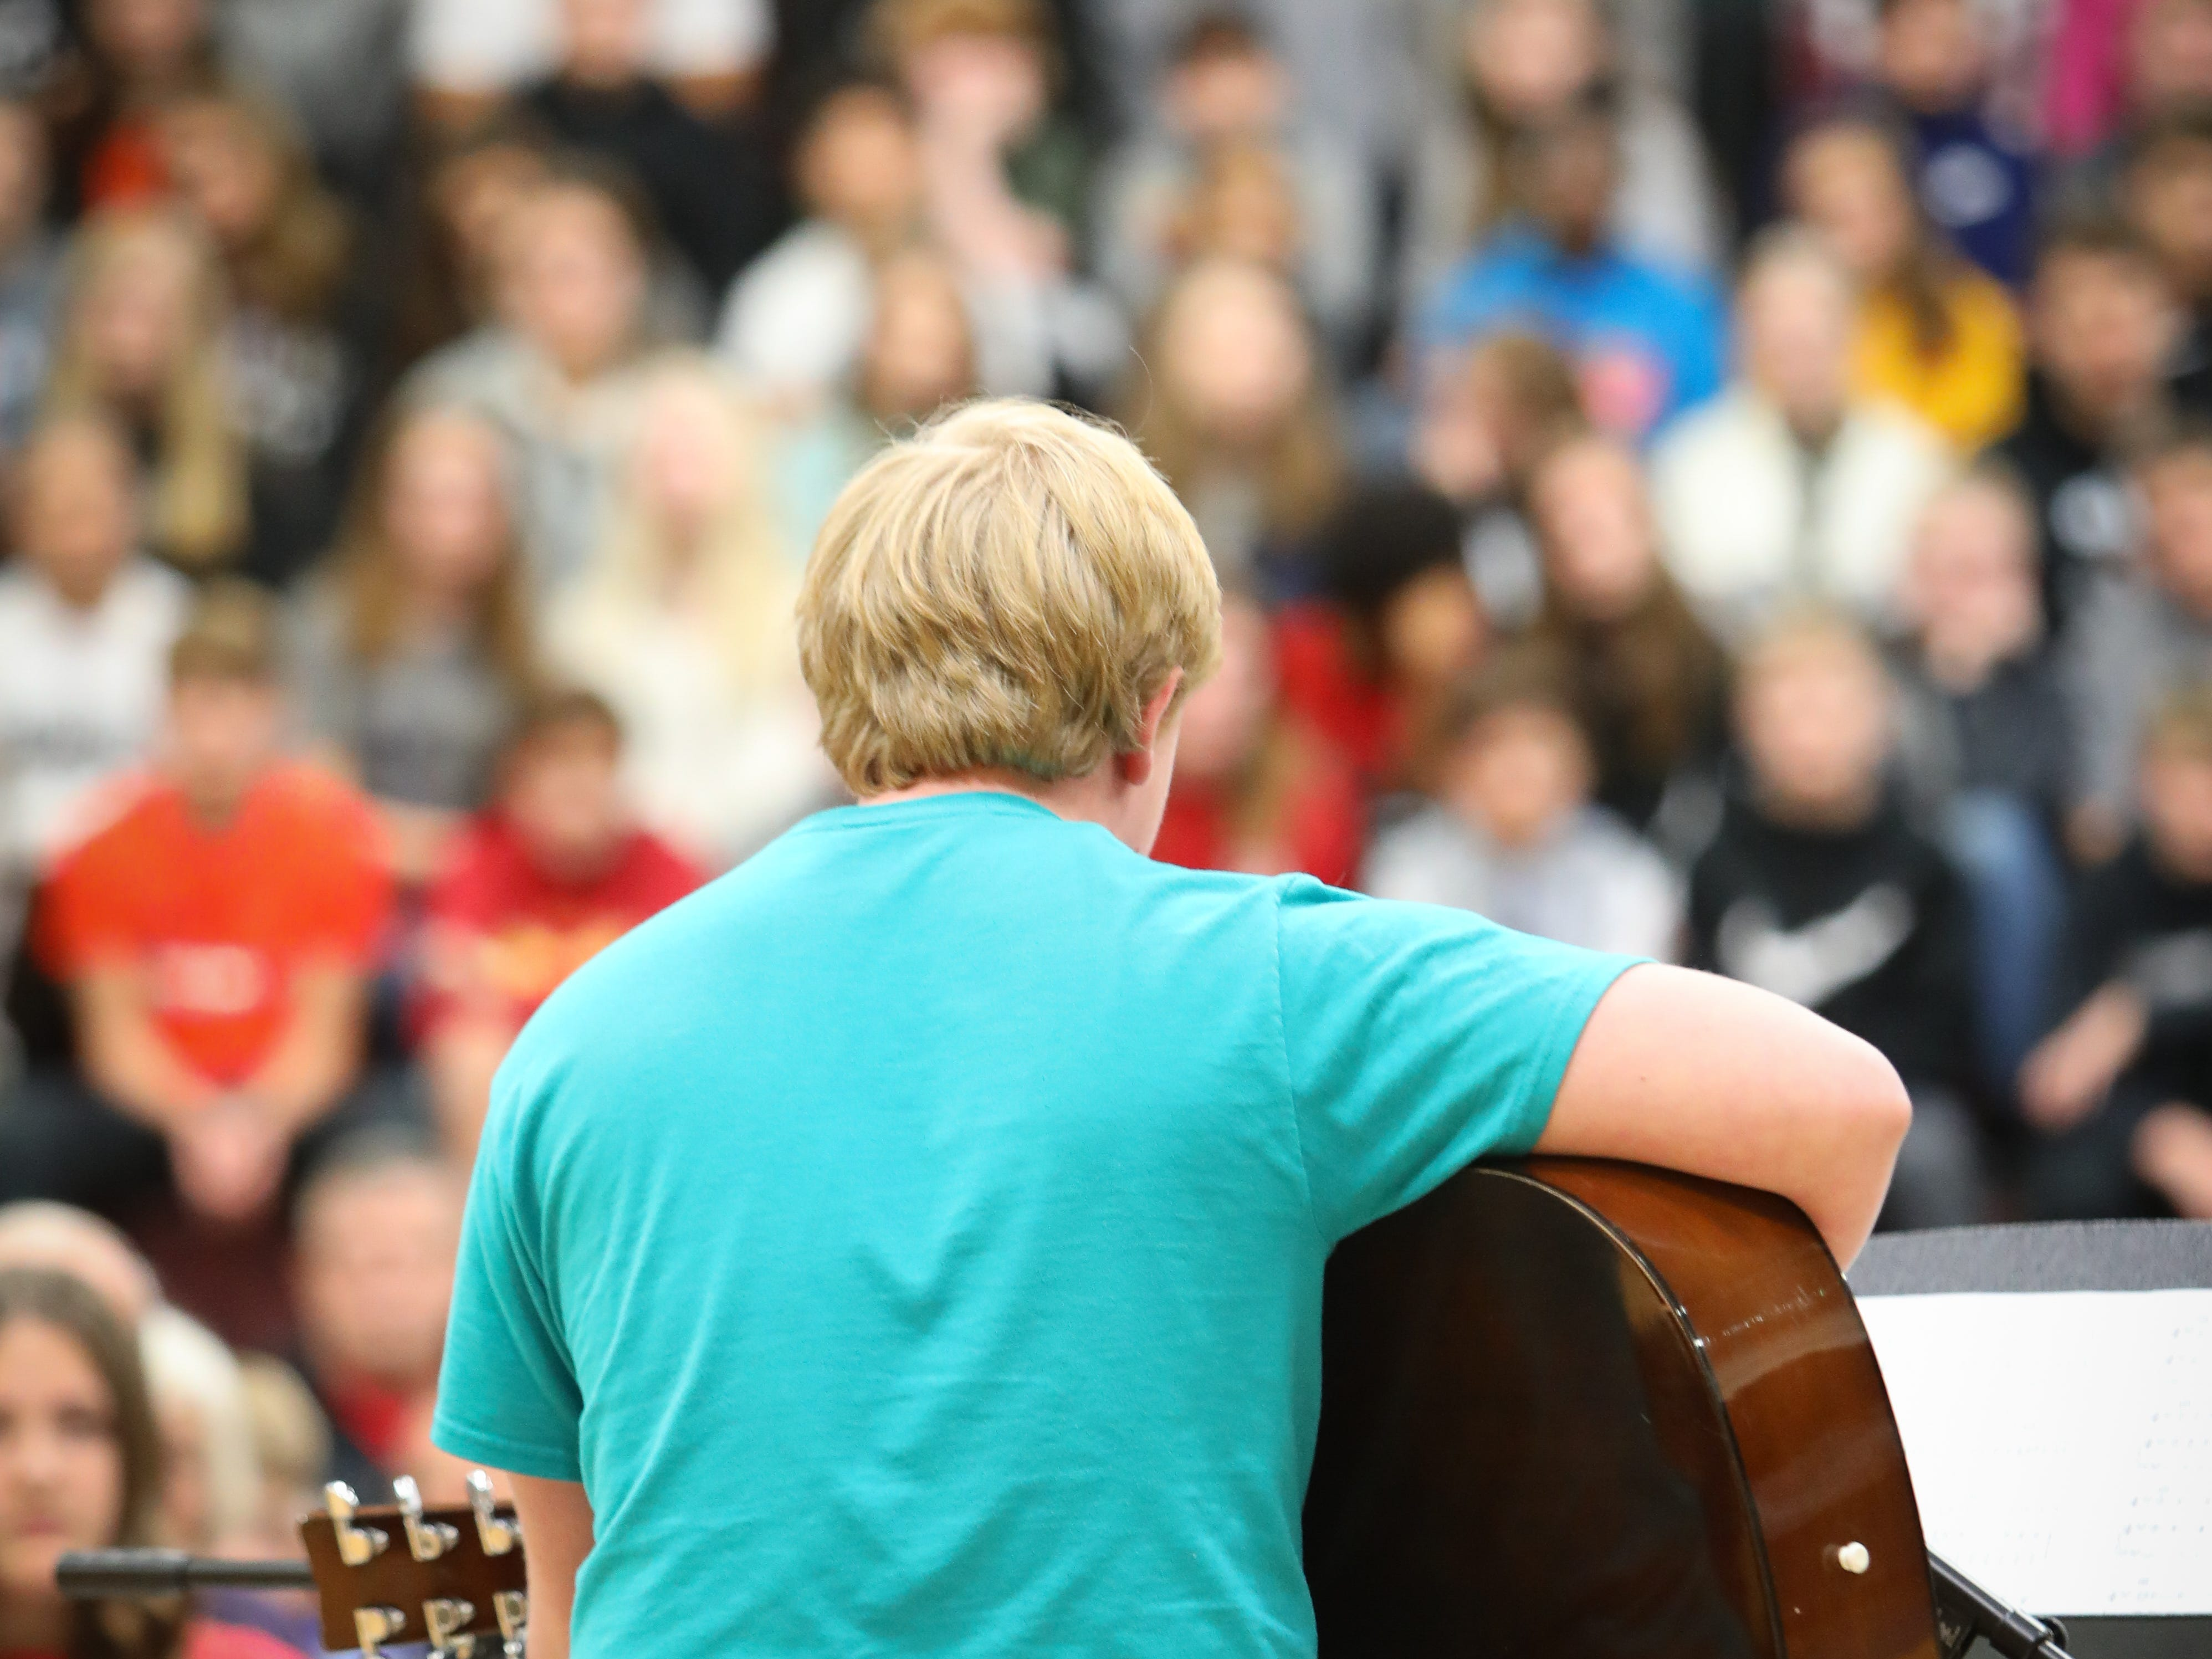 """Corbin Emminger plays """"8th of November"""" by Big and Rich on the guitar during Veterans Day Breakfast at Northview Middle School on Wednesday, Nov. 14, 2018 in Ankeny, Iowa."""